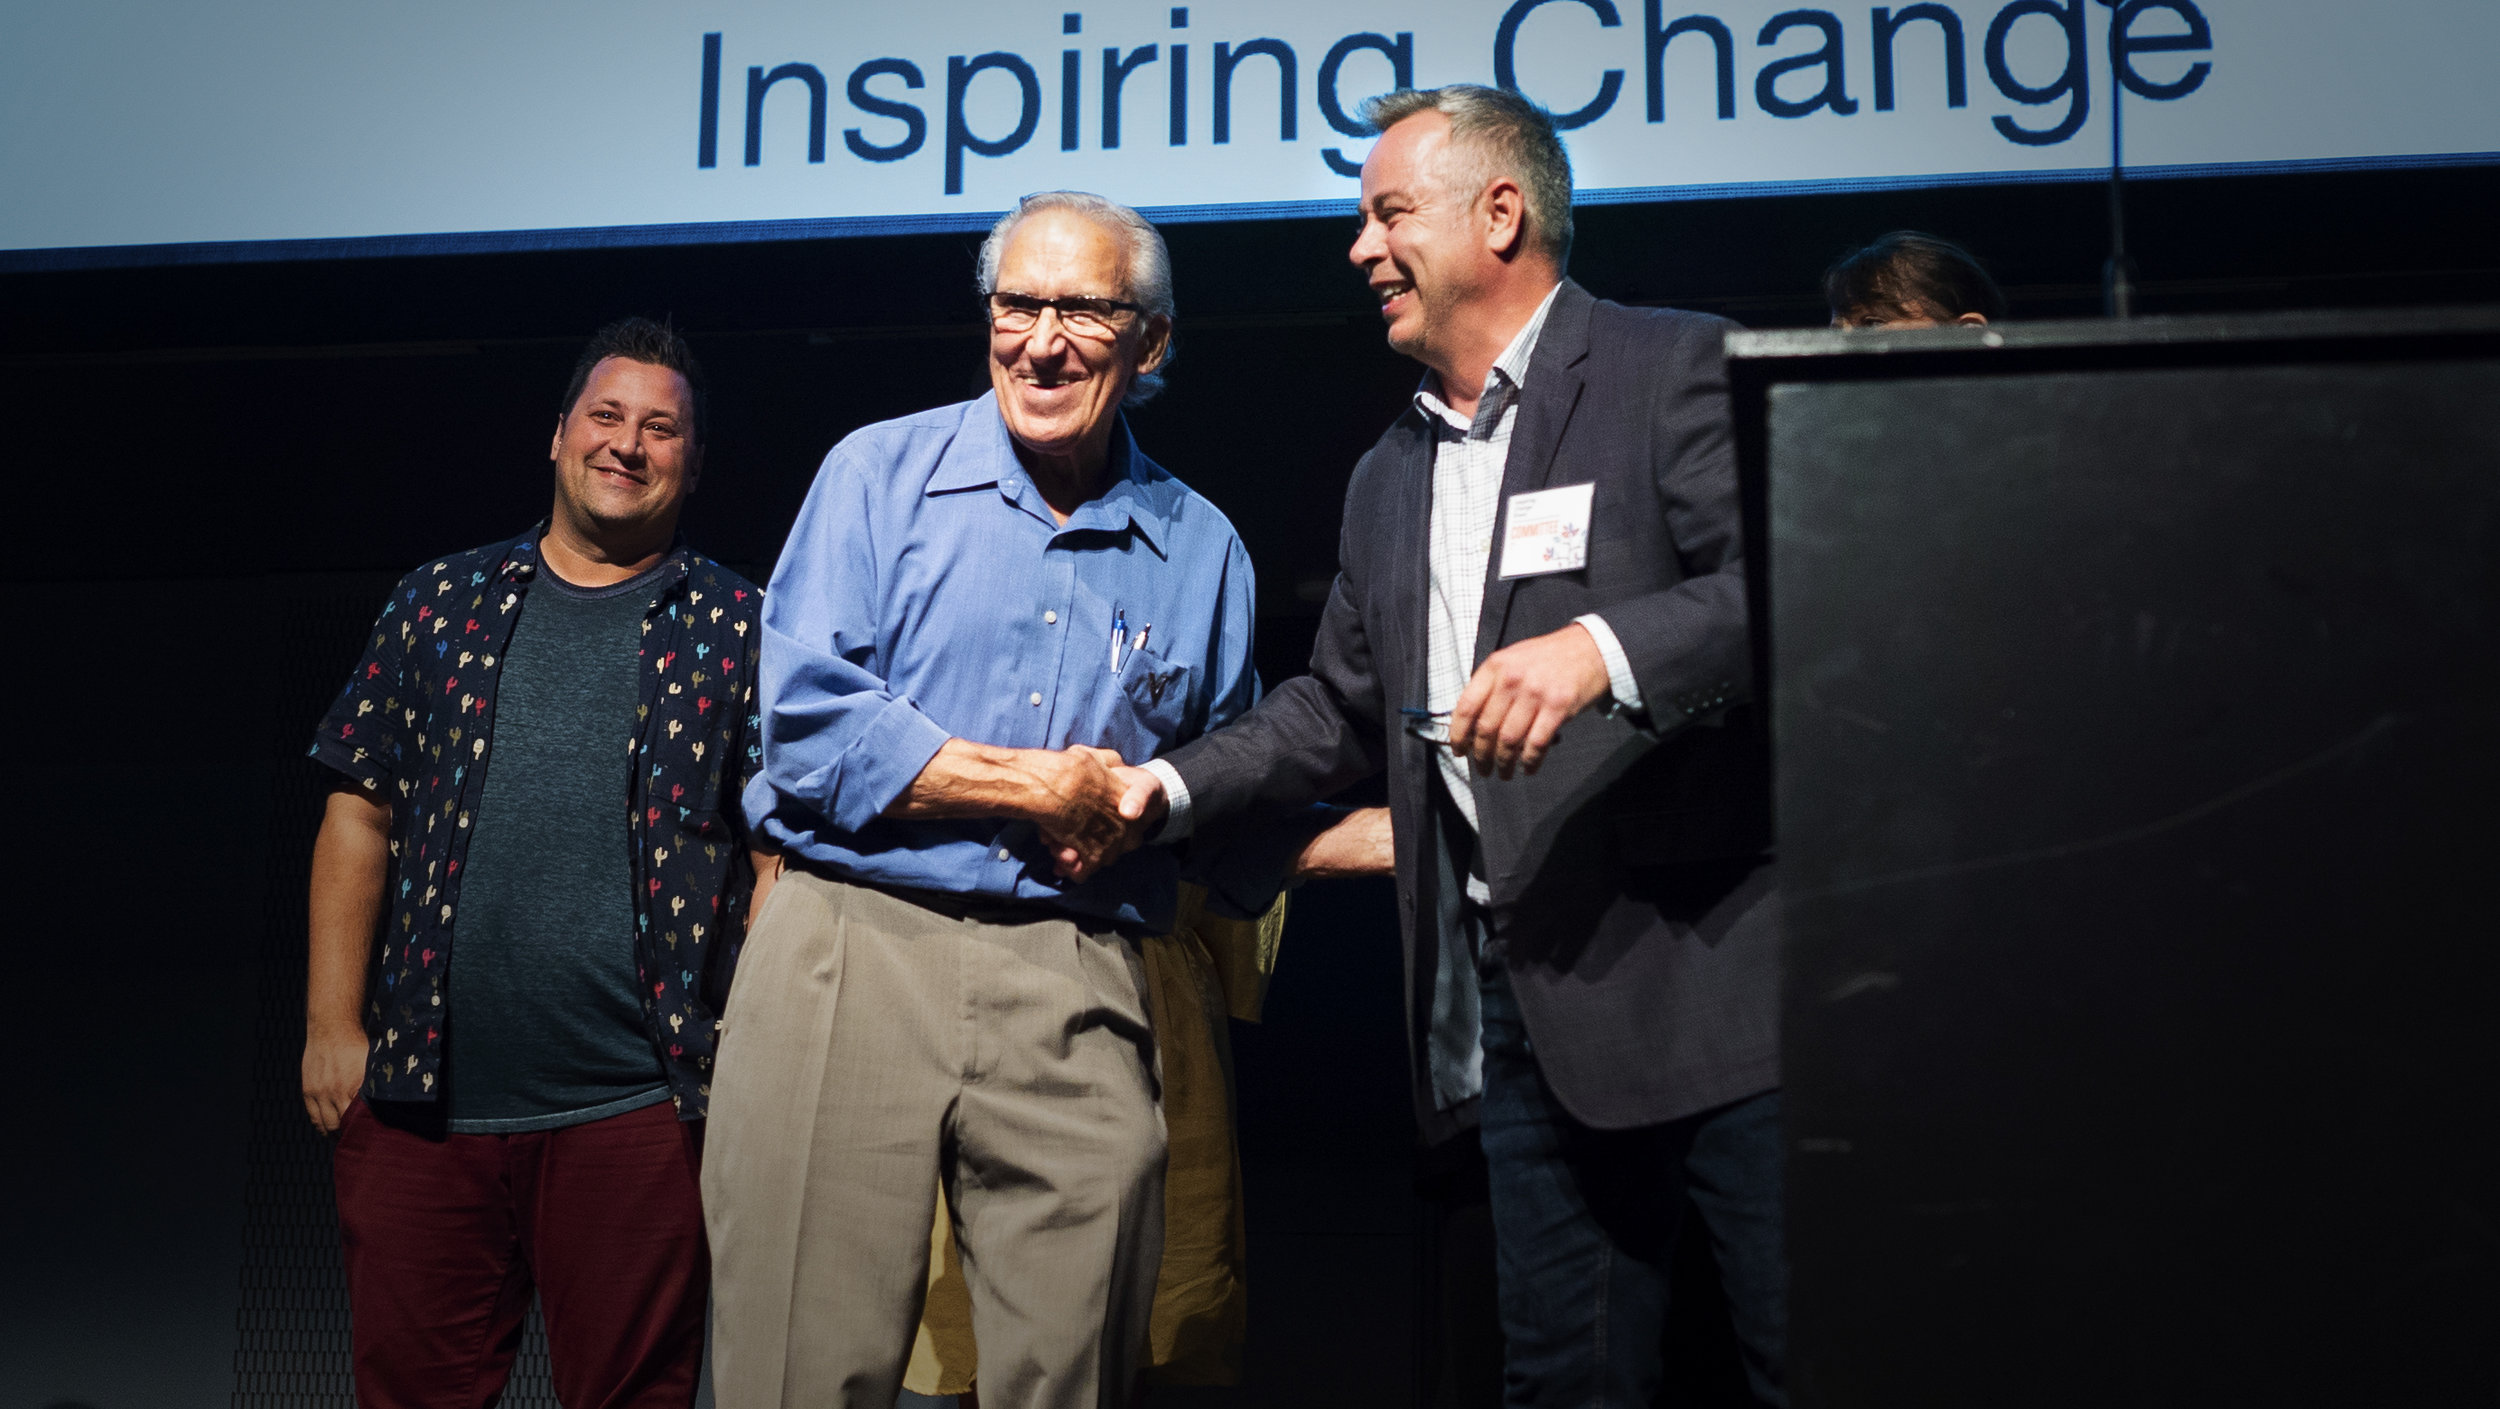 MARK SHAPIRO | RECIPIENT OF INSPIRING CHANGE AWARD